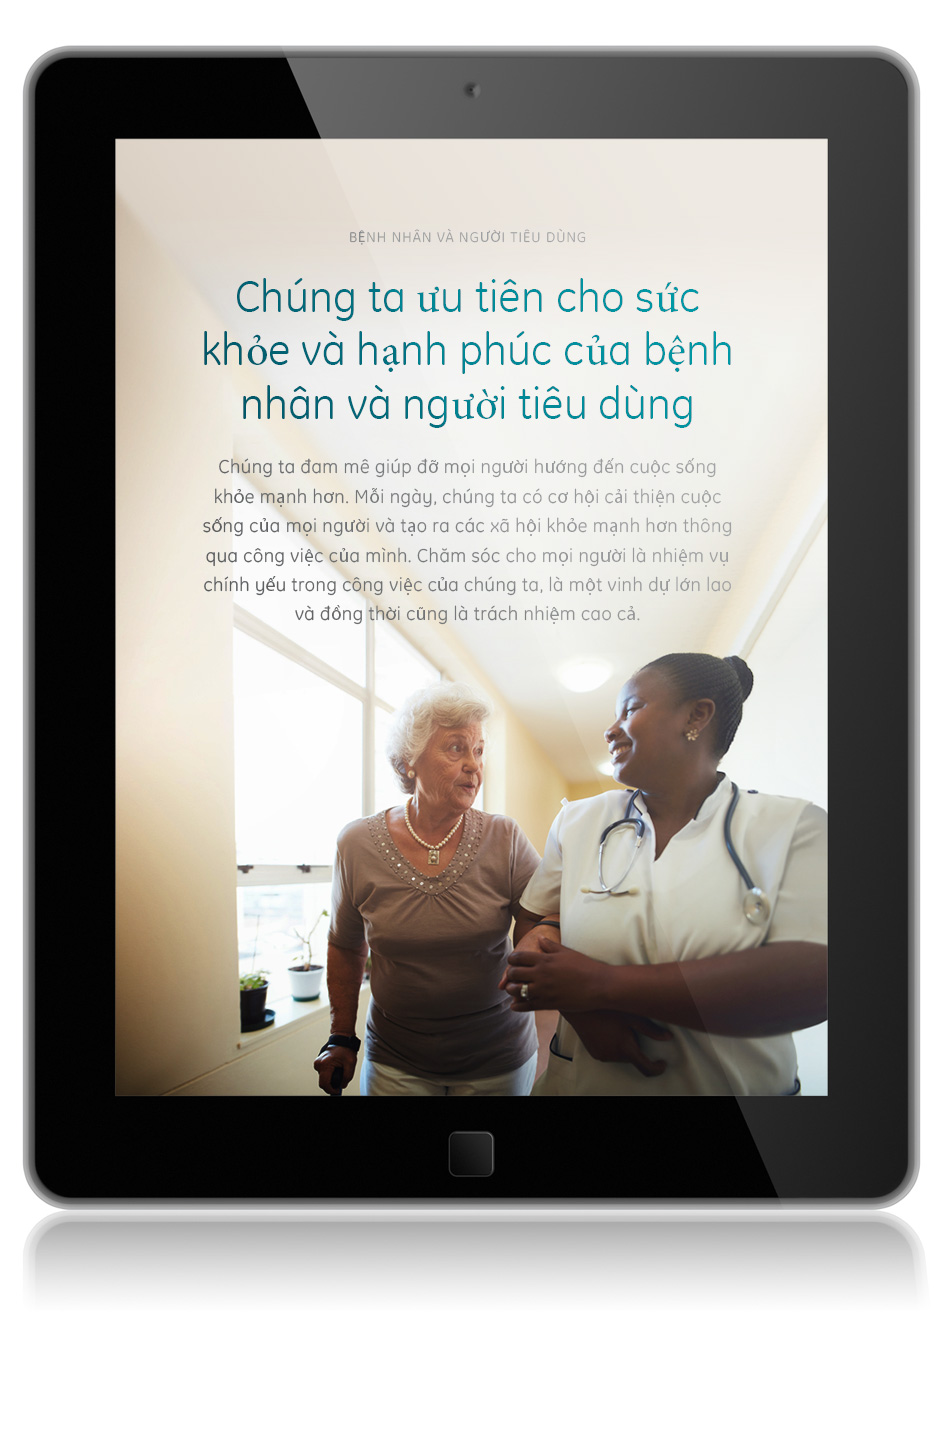 OurWork_Train75k_iPad_Vietnamese.jpg